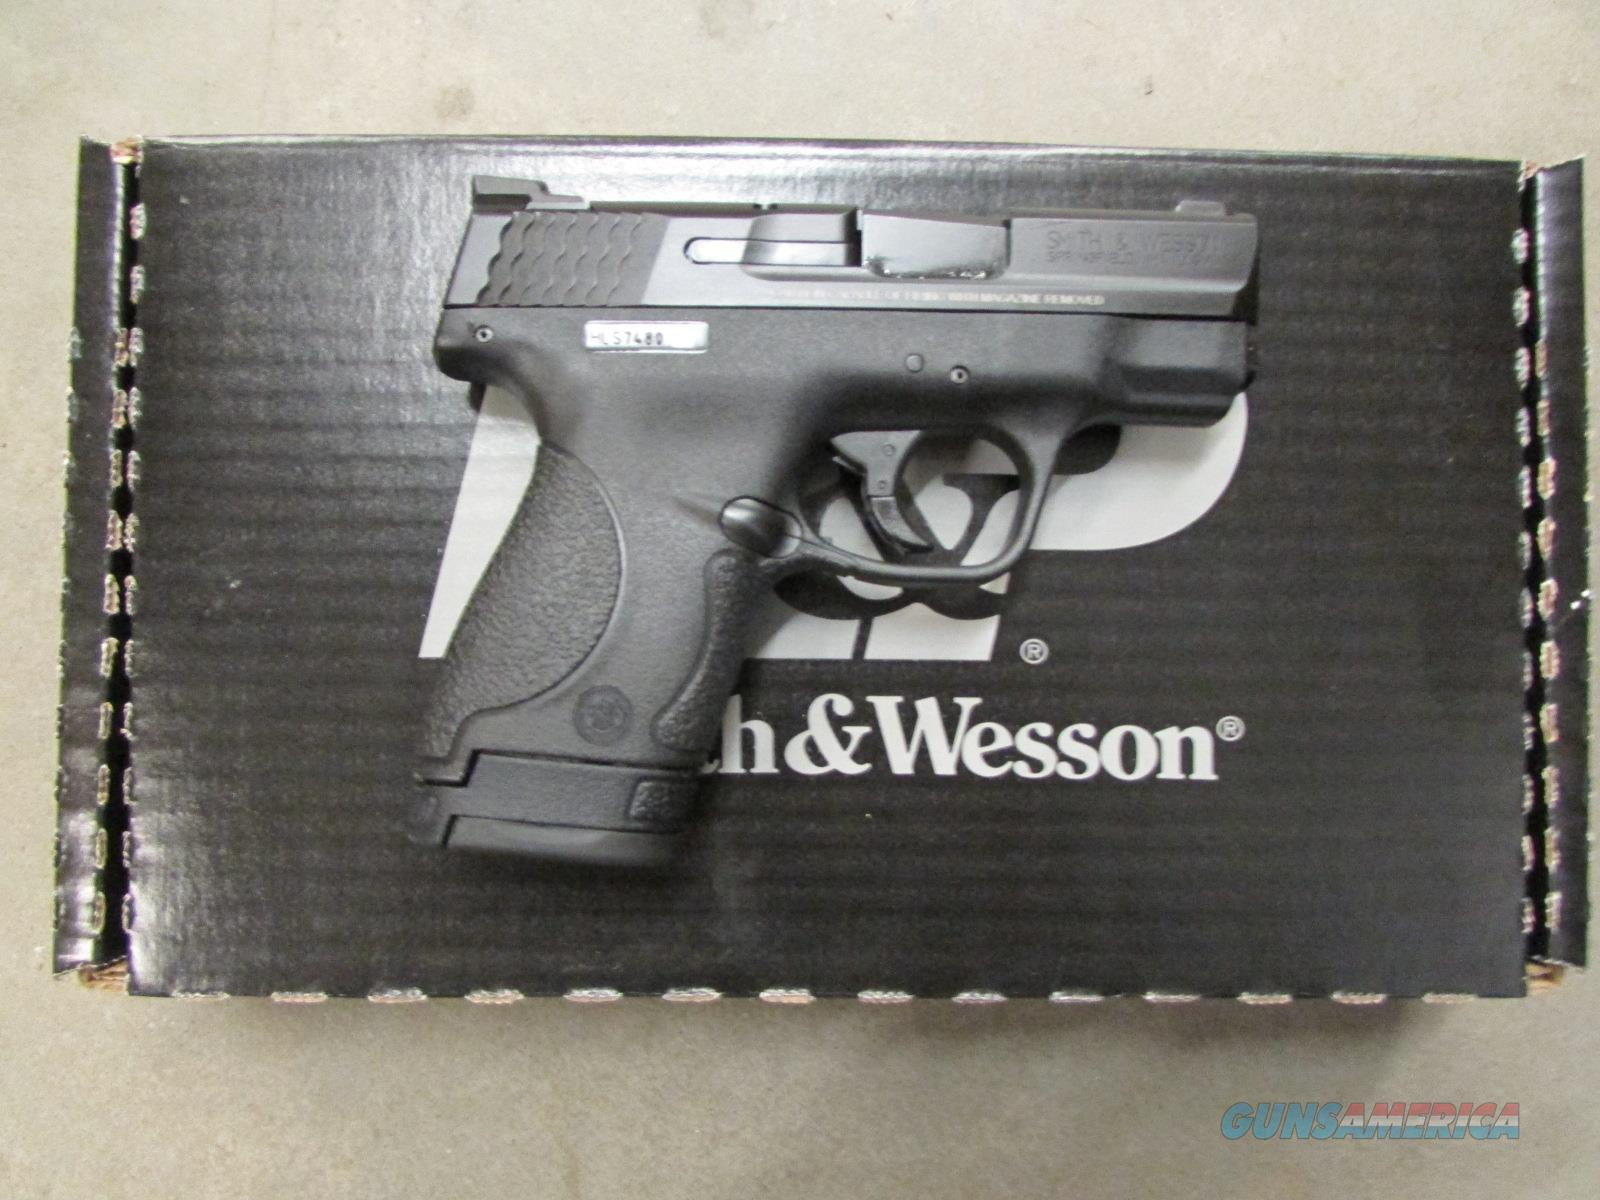 SMITH & WESSON M&P SHIELD .40 S&W NIGHT SIGHTS 10214  Guns > Pistols > Smith & Wesson Pistols - Autos > Shield